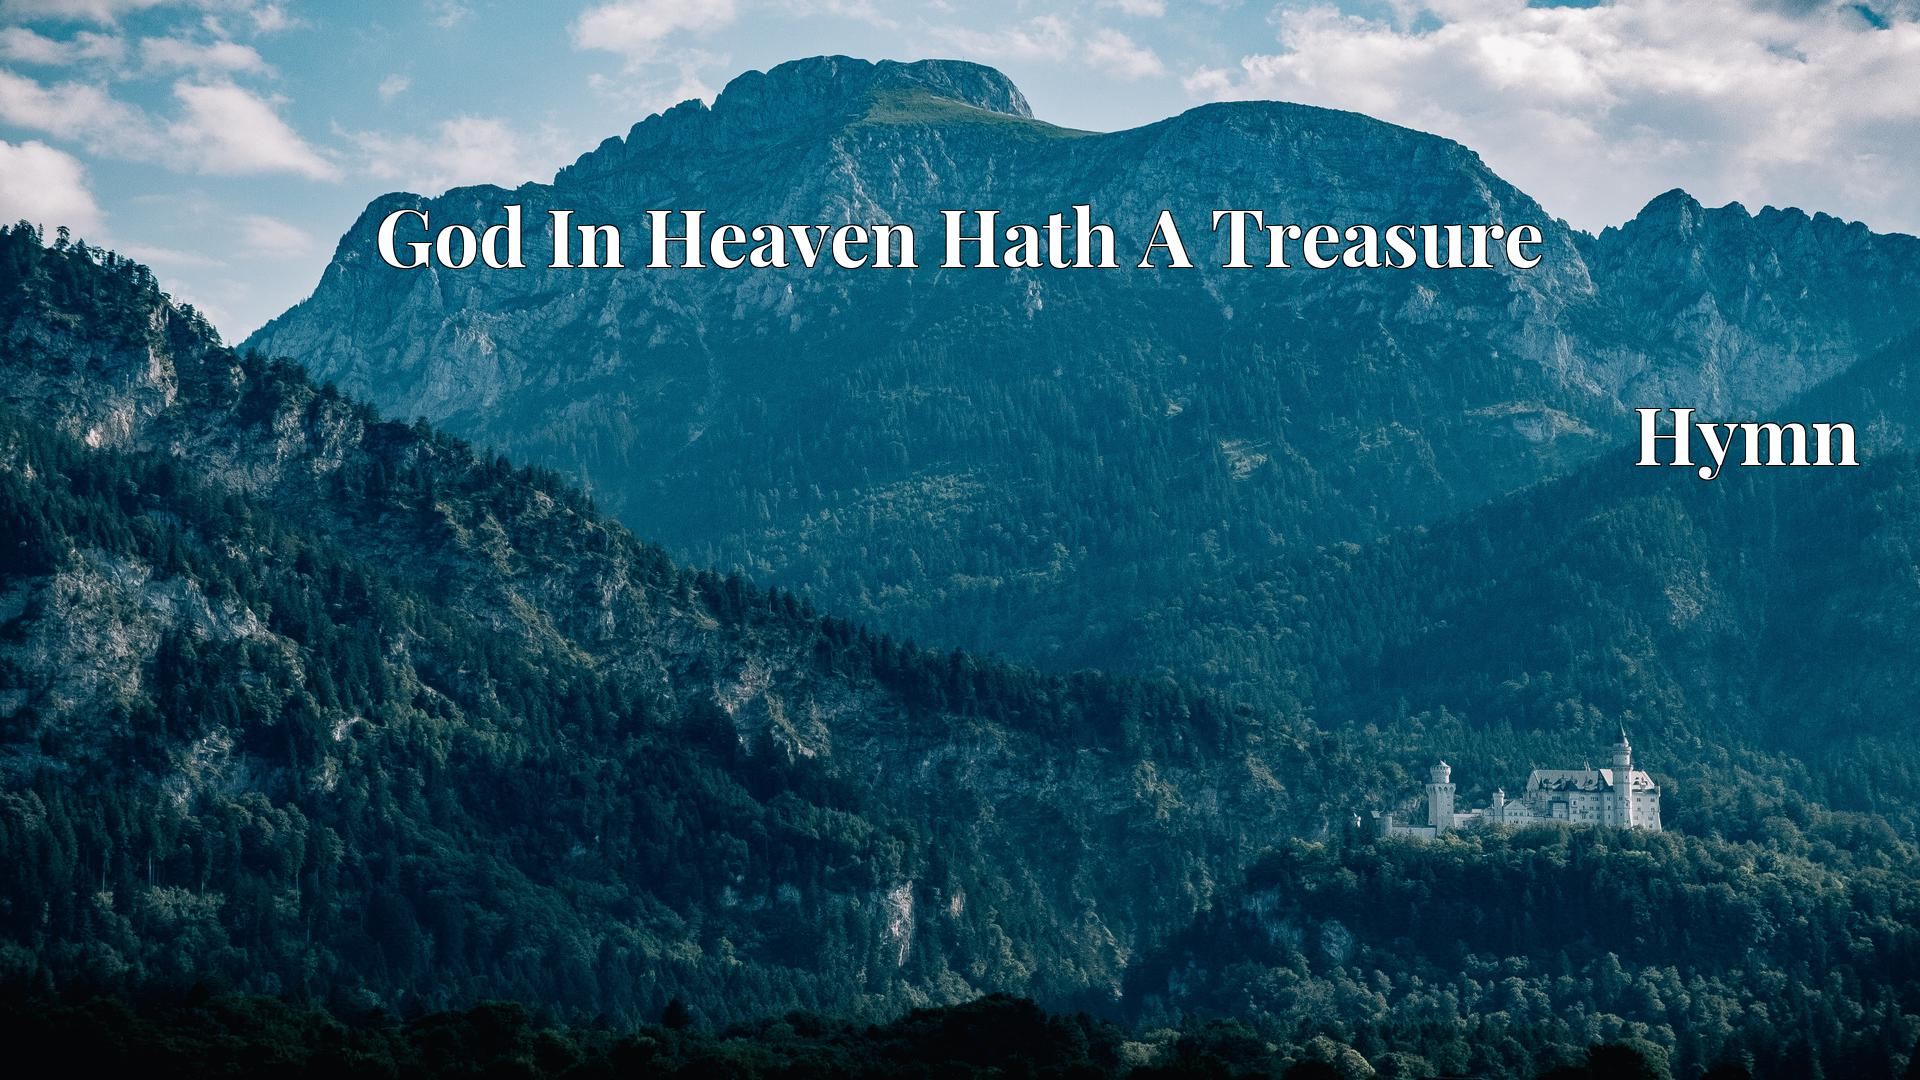 God In Heaven Hath A Treasure - Hymn